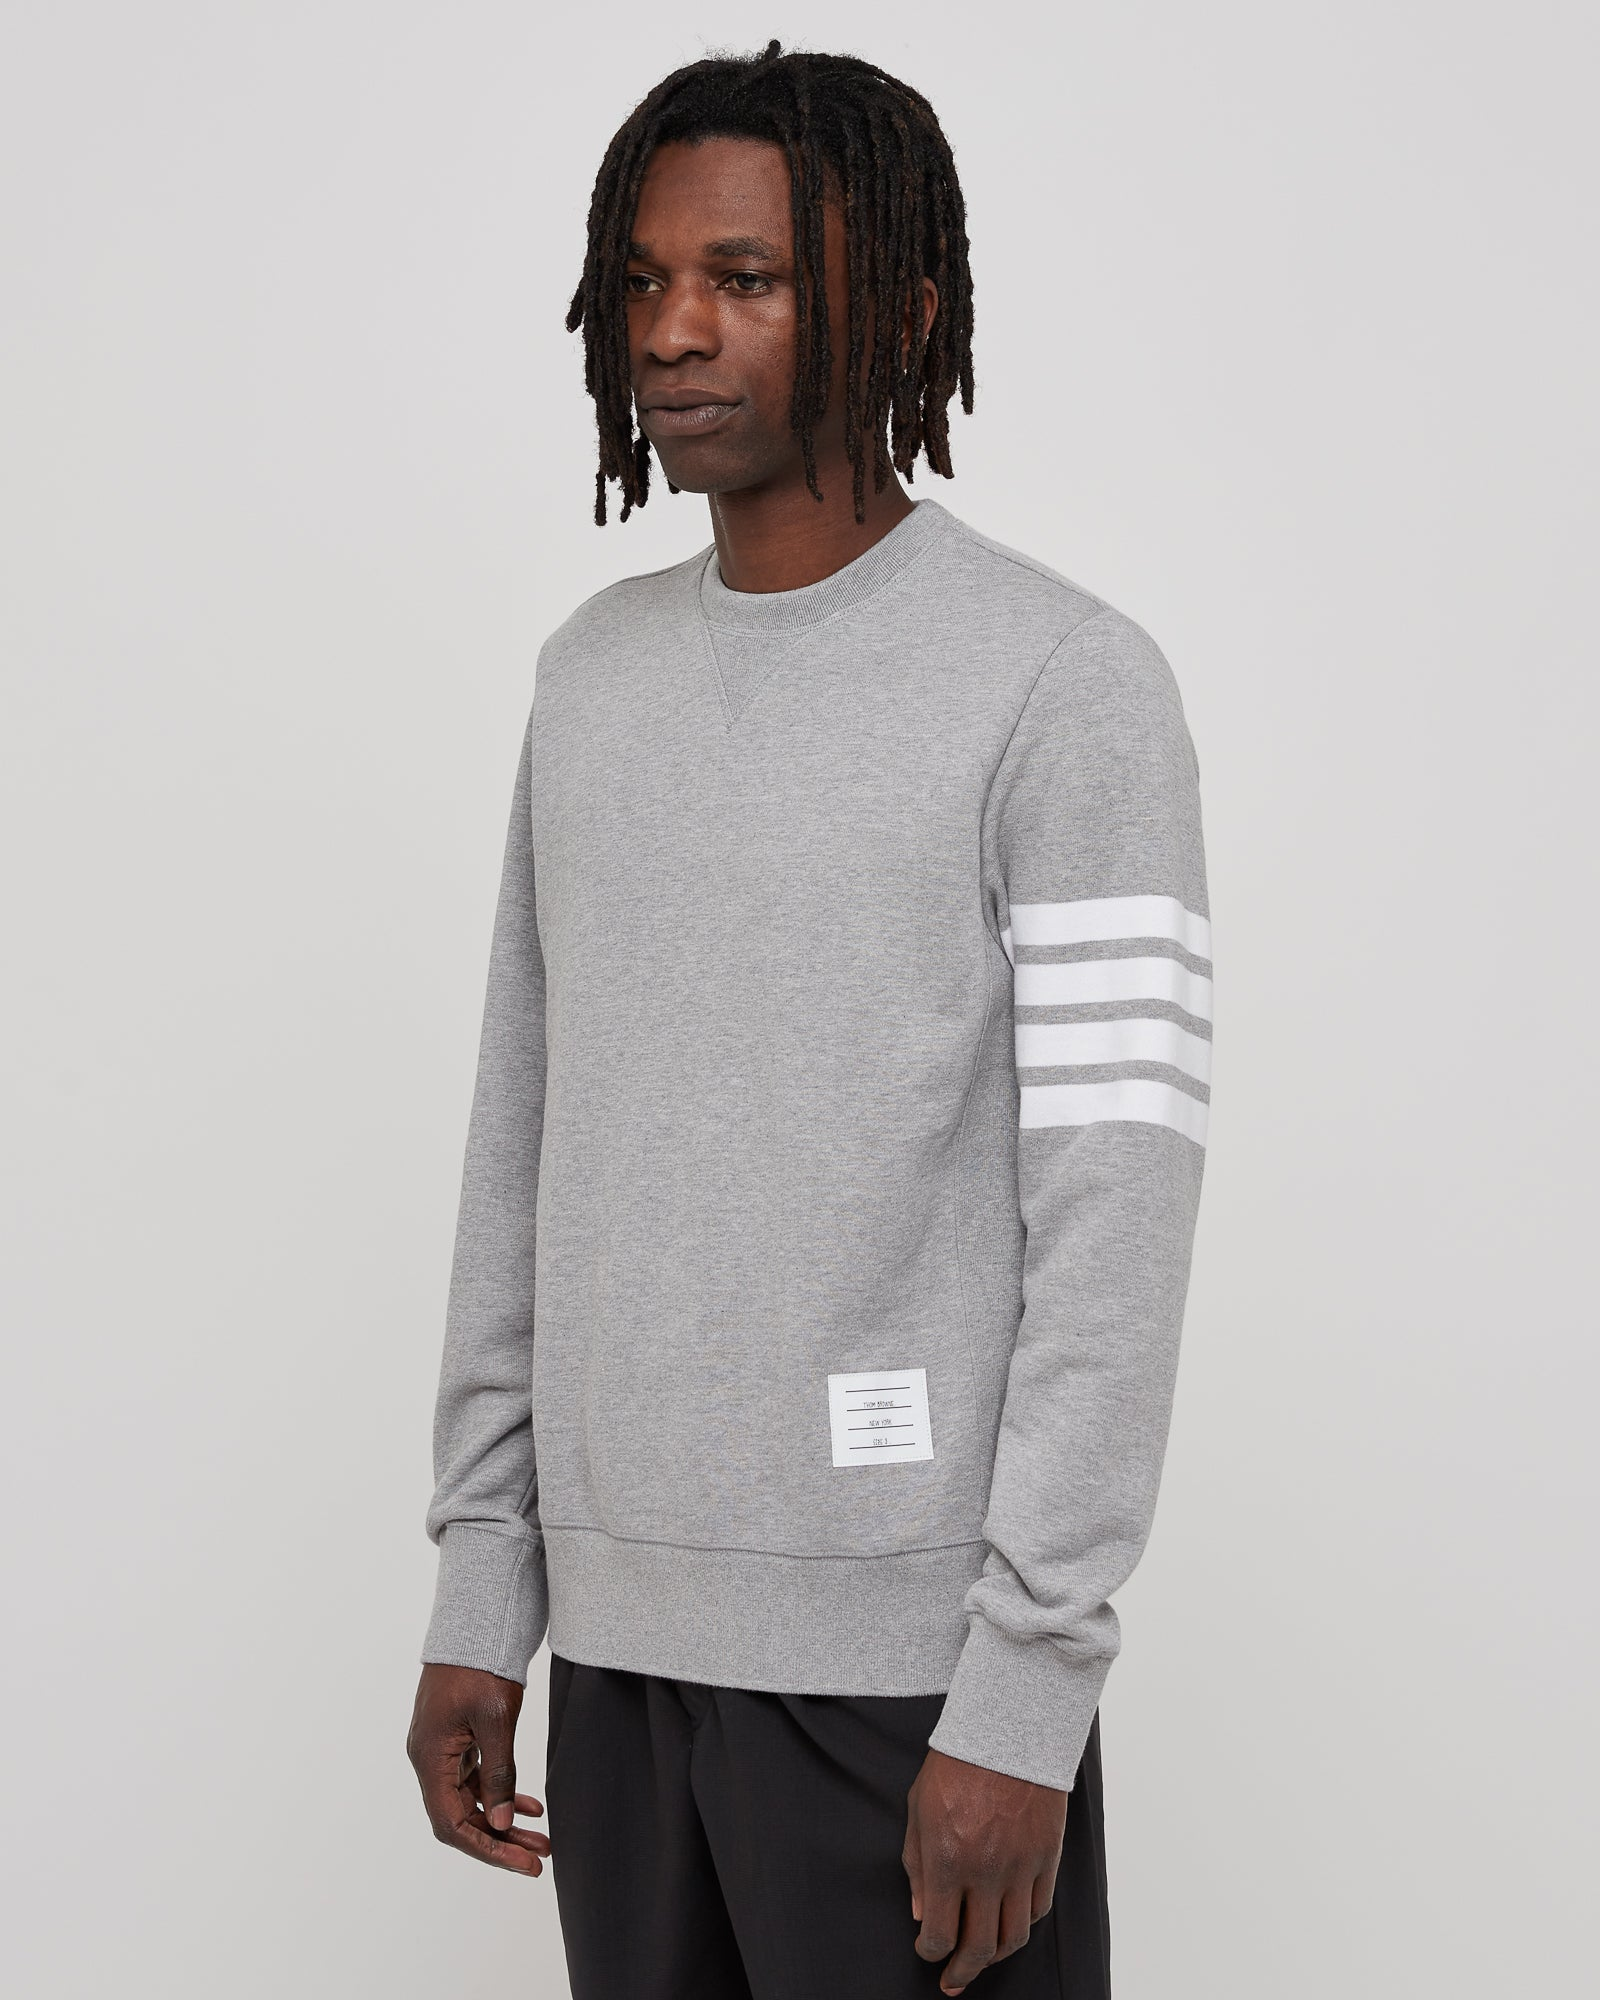 Classic Sweatshirt with Engineered 4 Bar in Gray